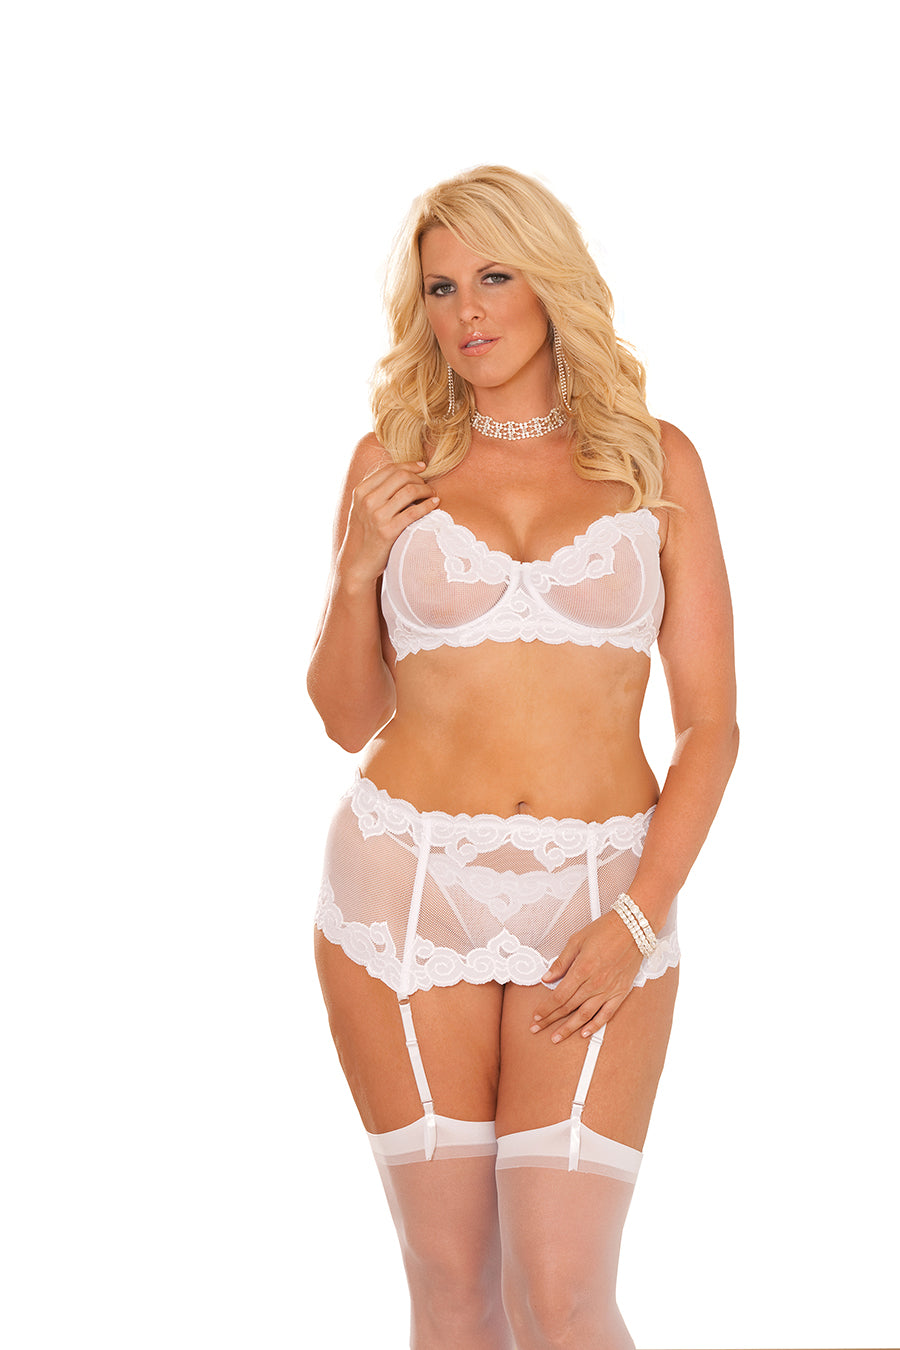 Plus Size Embroidered Mesh Underwire Bra And Waist Cincher With Matching G-String